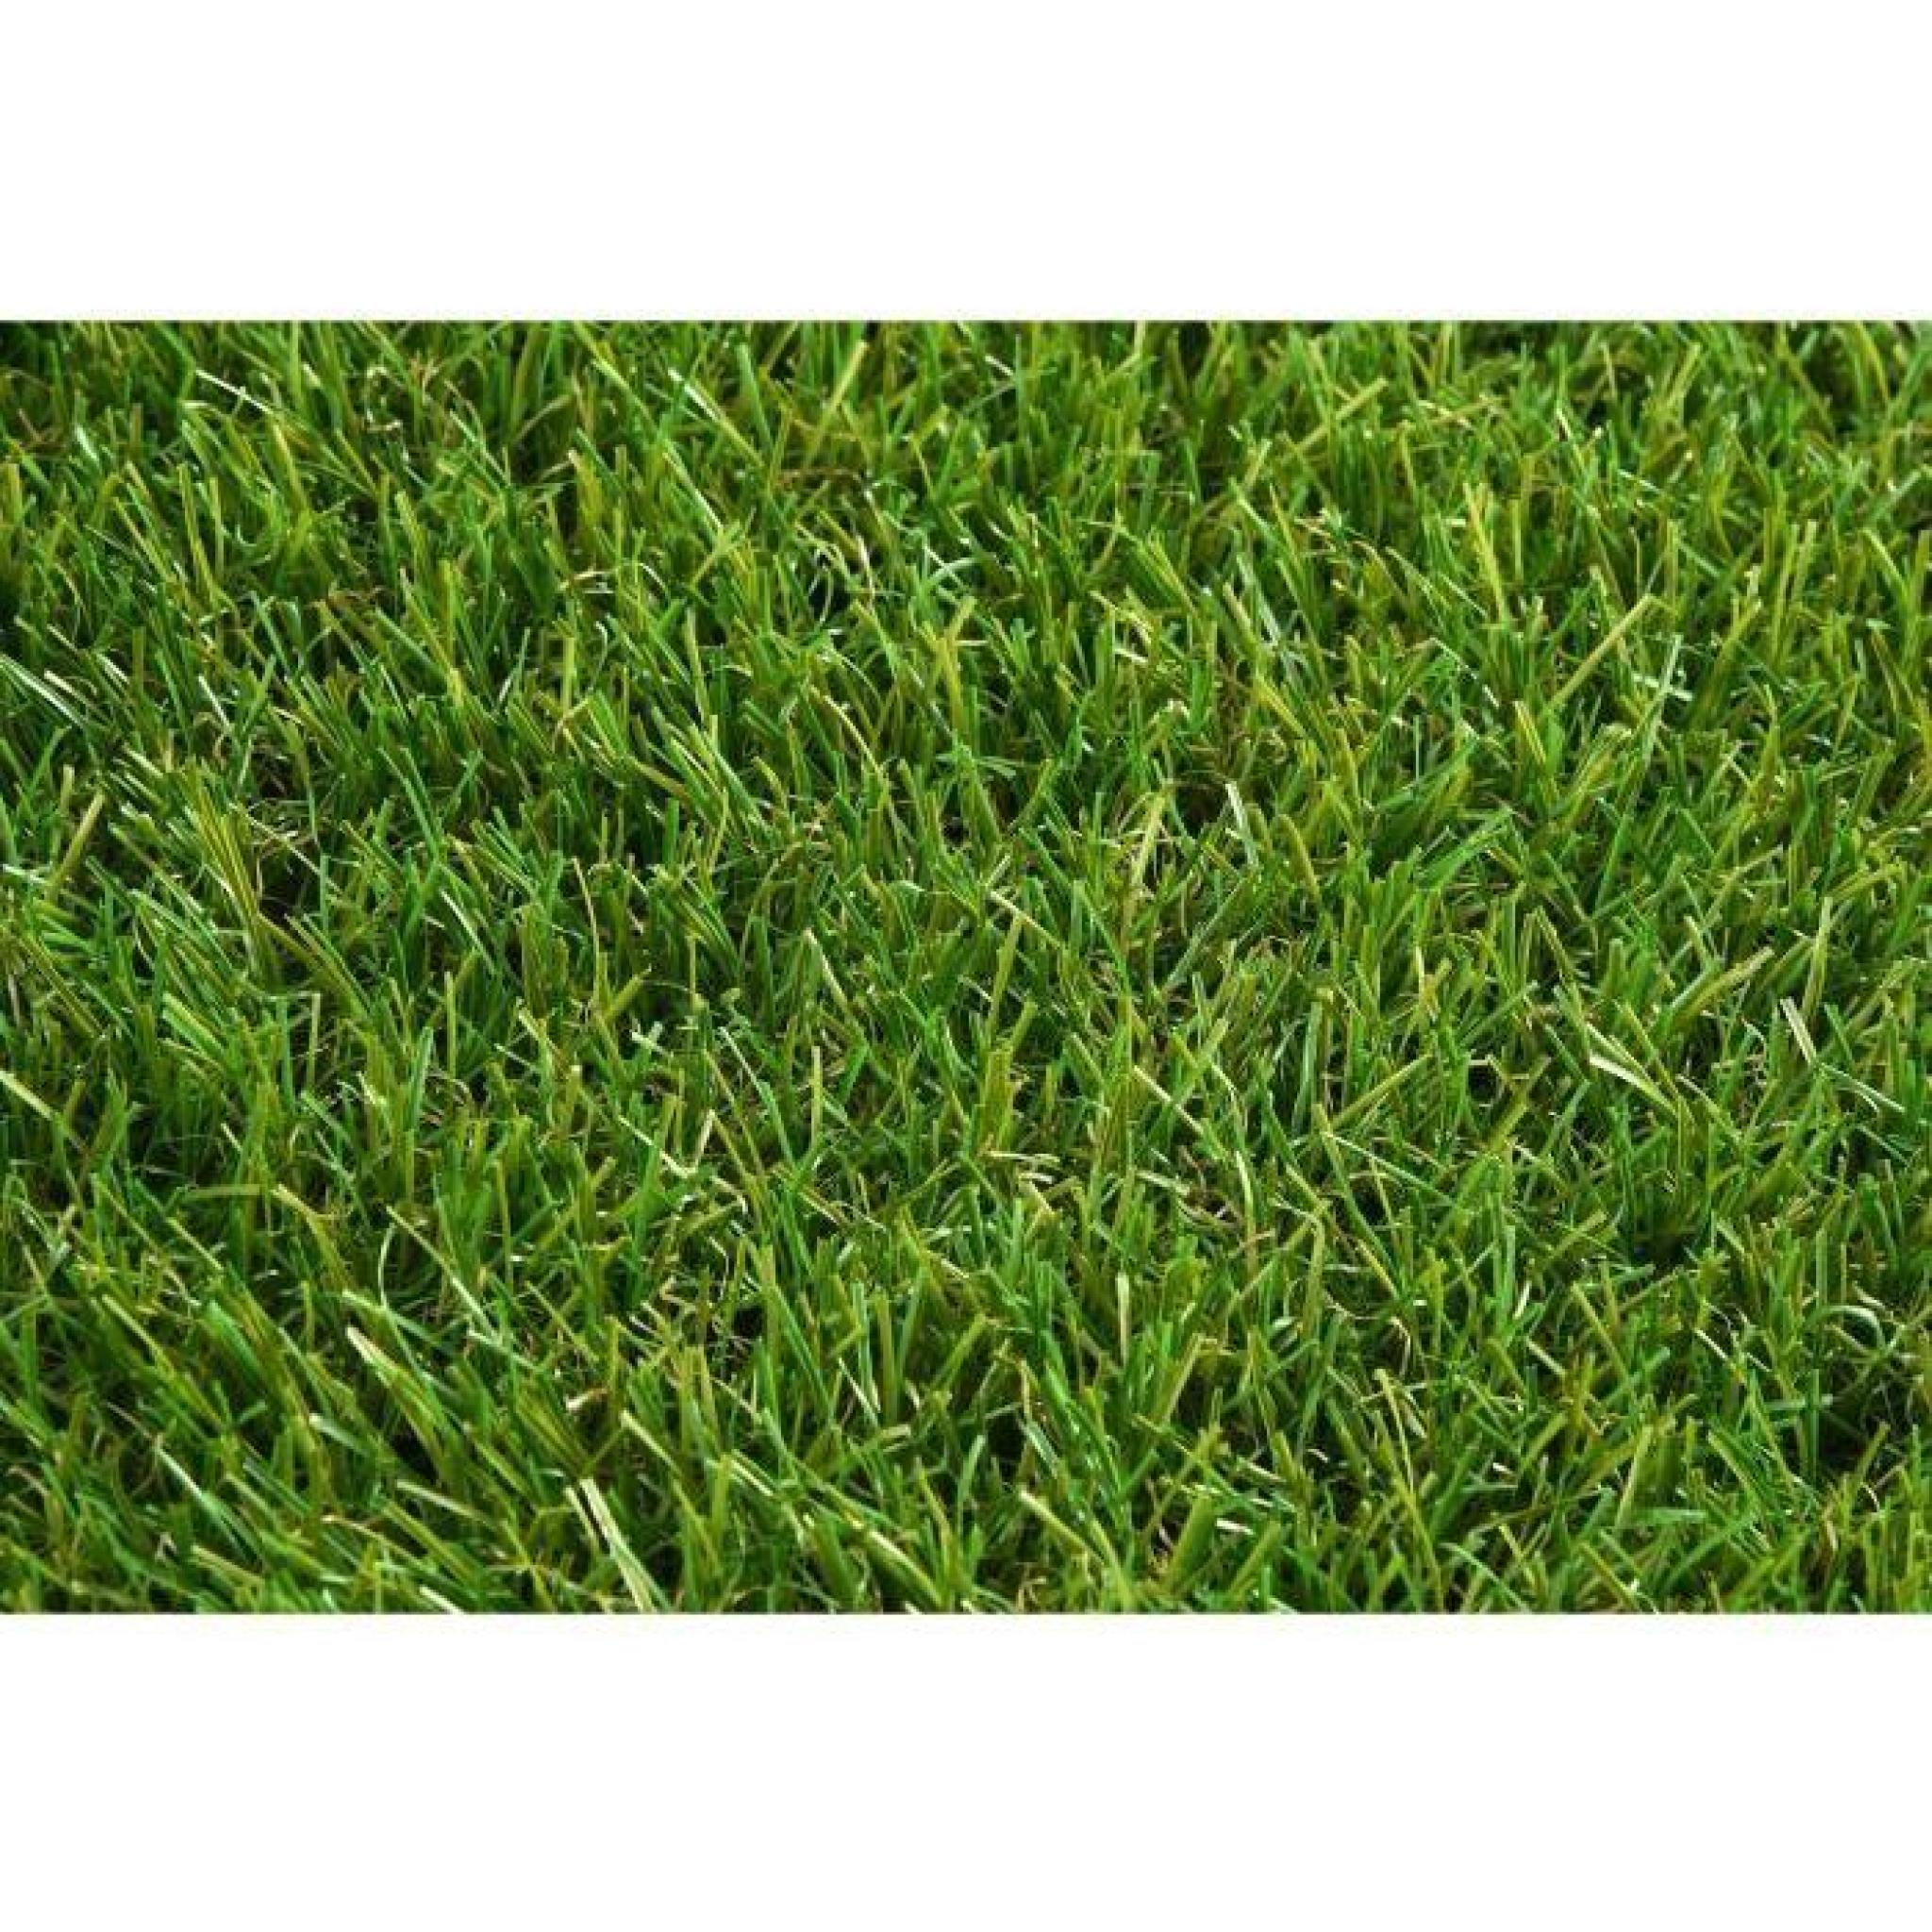 exelgreen gazon synth tique c revolution gb 3820 20 mm bobinot de 2x20 m achat vente gazon. Black Bedroom Furniture Sets. Home Design Ideas